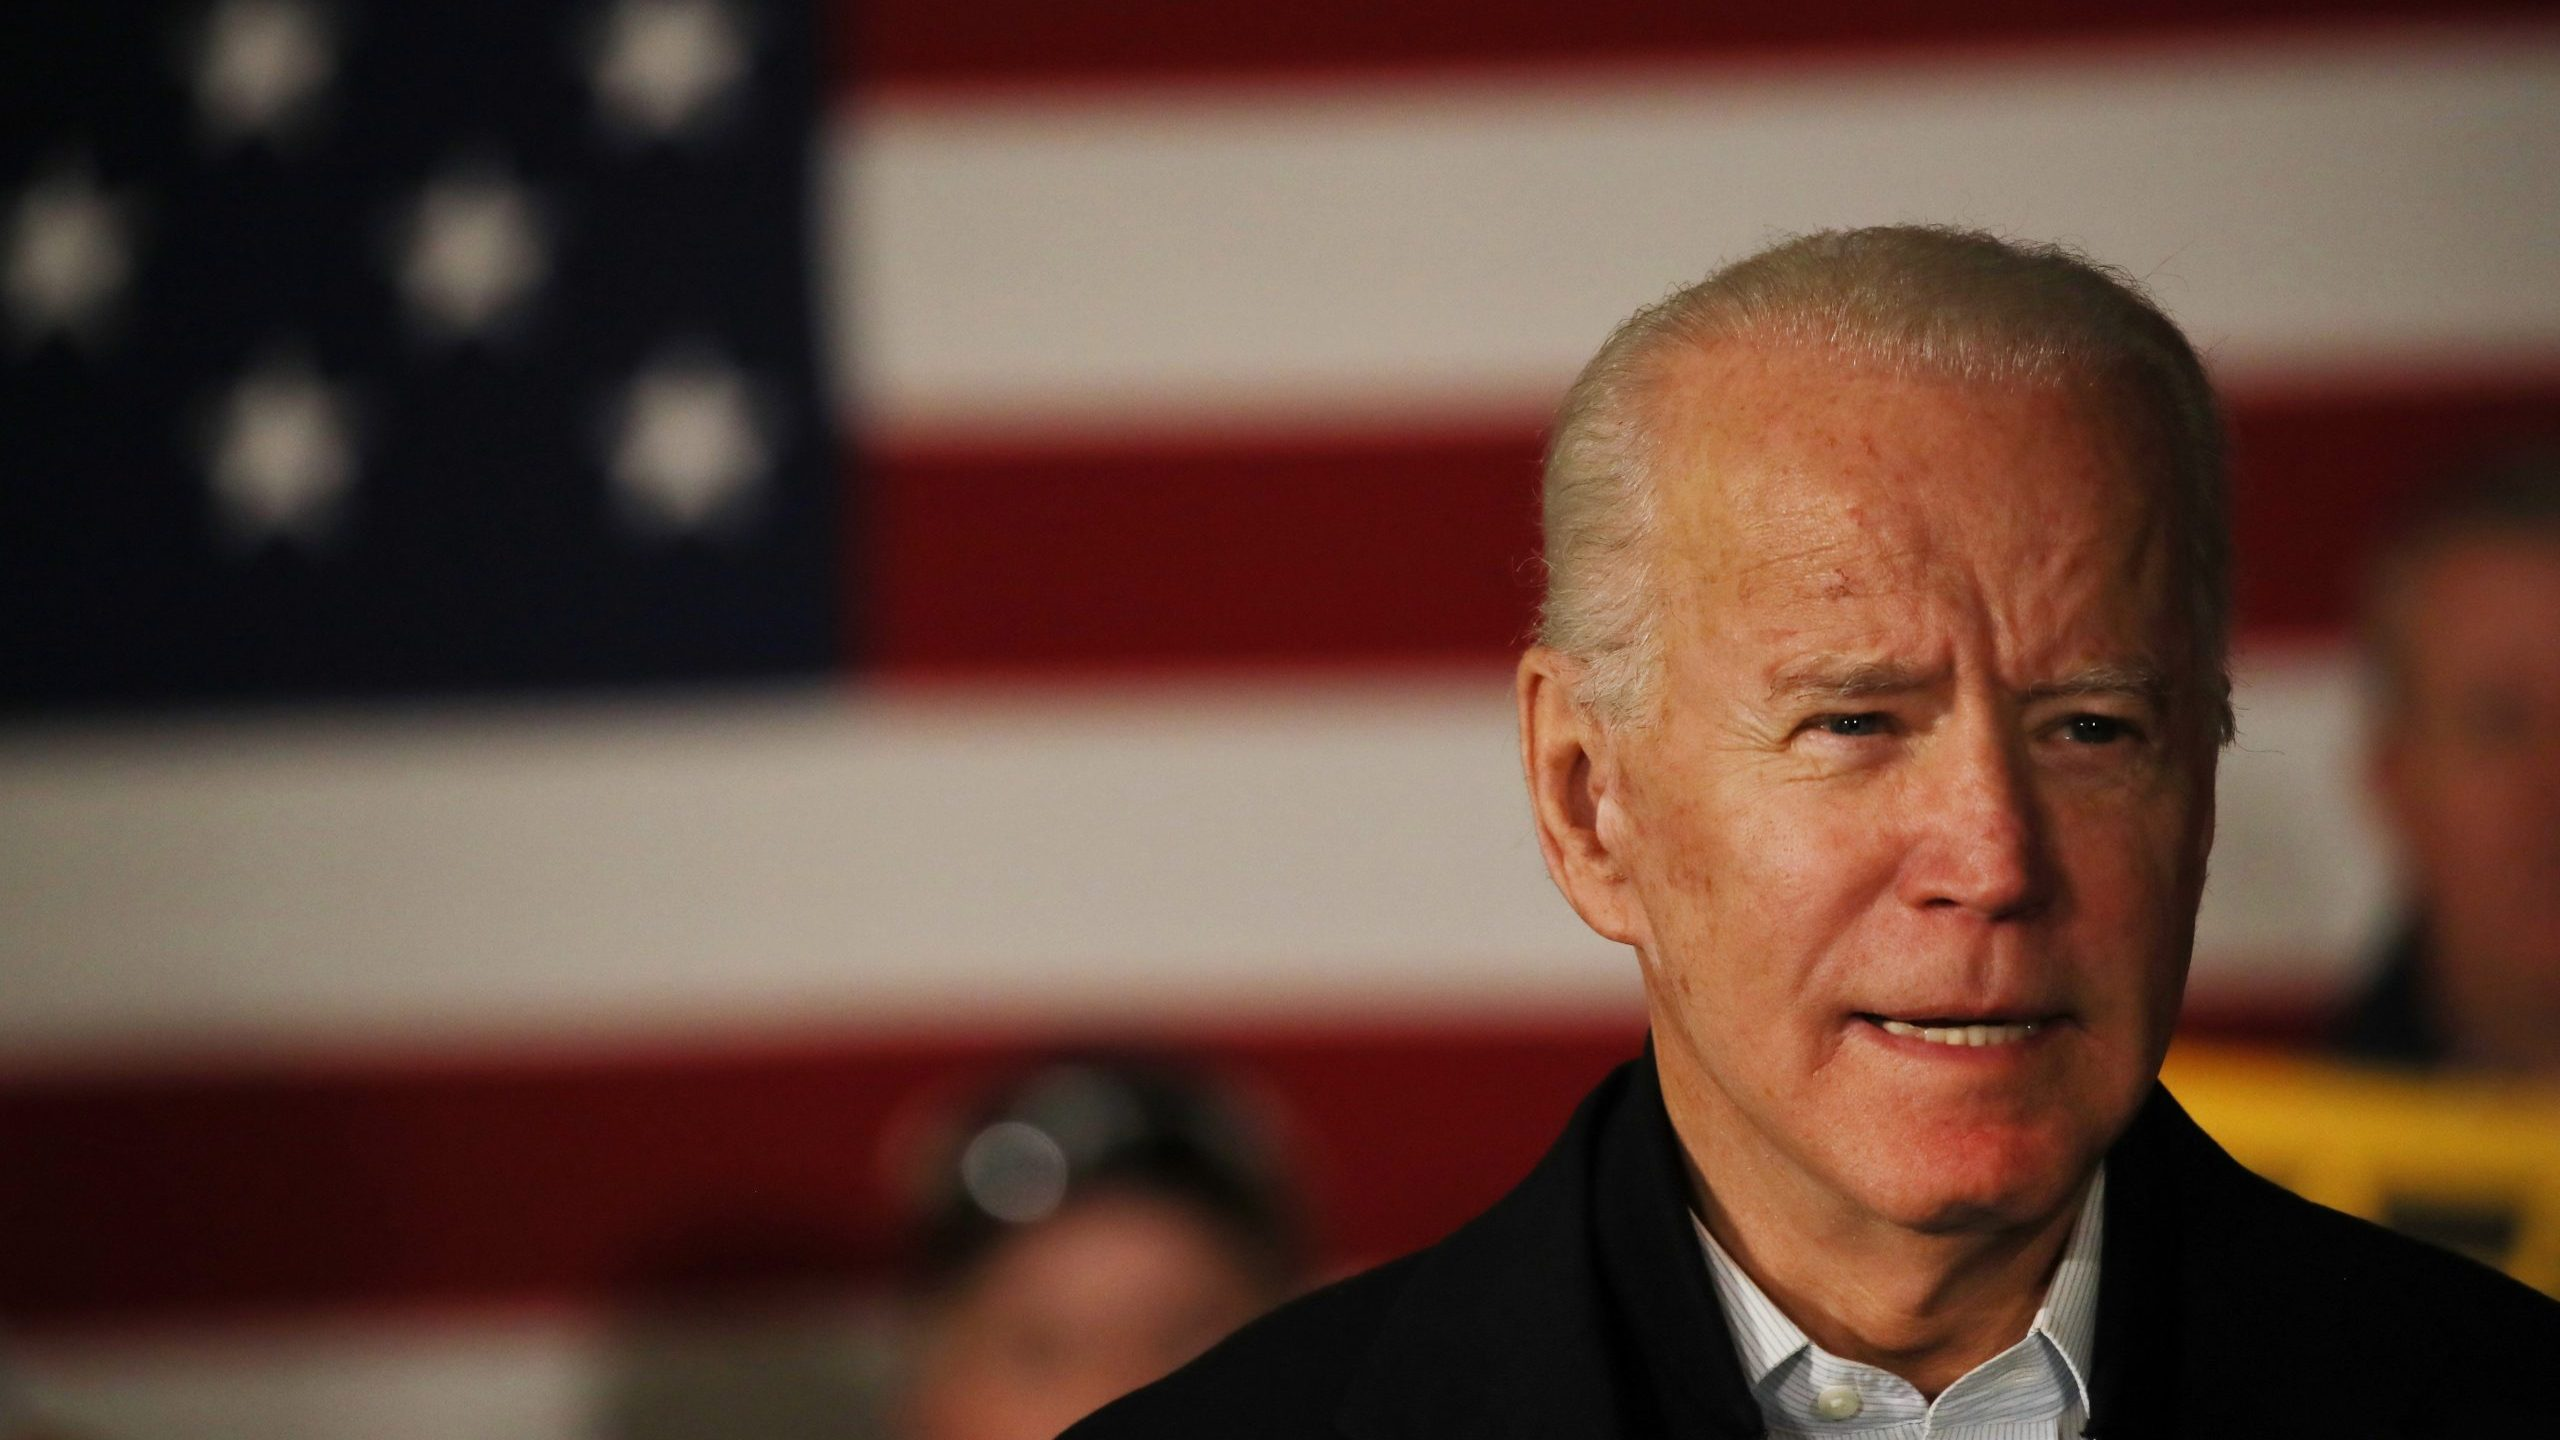 Democratic presidential candidate former Vice President Joe Biden speaks at an event on February 5, 2020, in Somersworth, New Hampshire. (Spencer Platt/Getty Images)